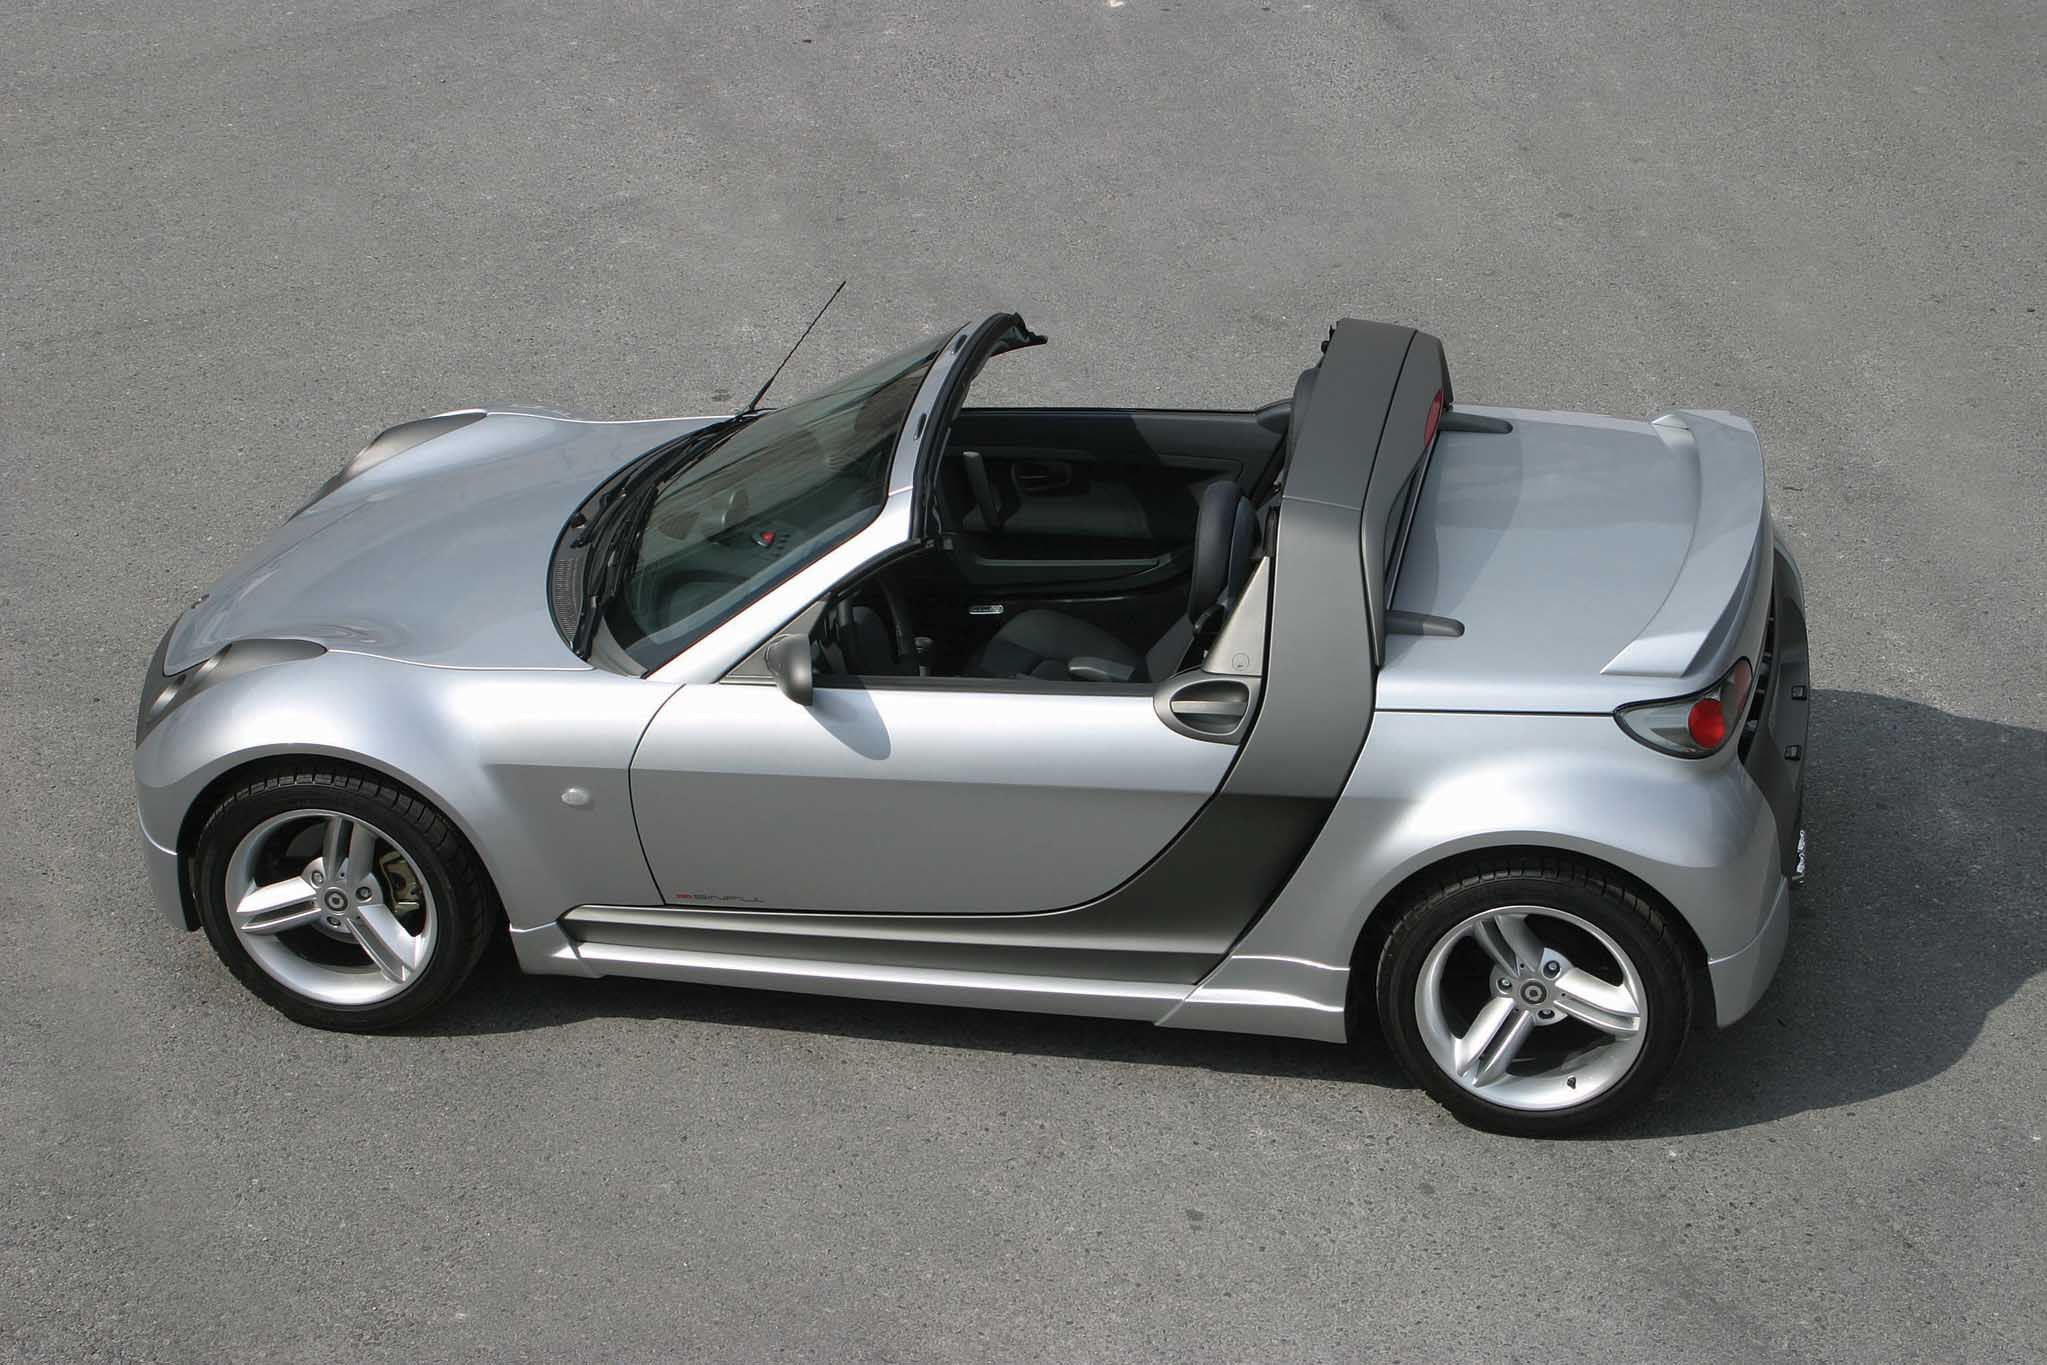 smart roadster history photos on better parts ltd. Black Bedroom Furniture Sets. Home Design Ideas